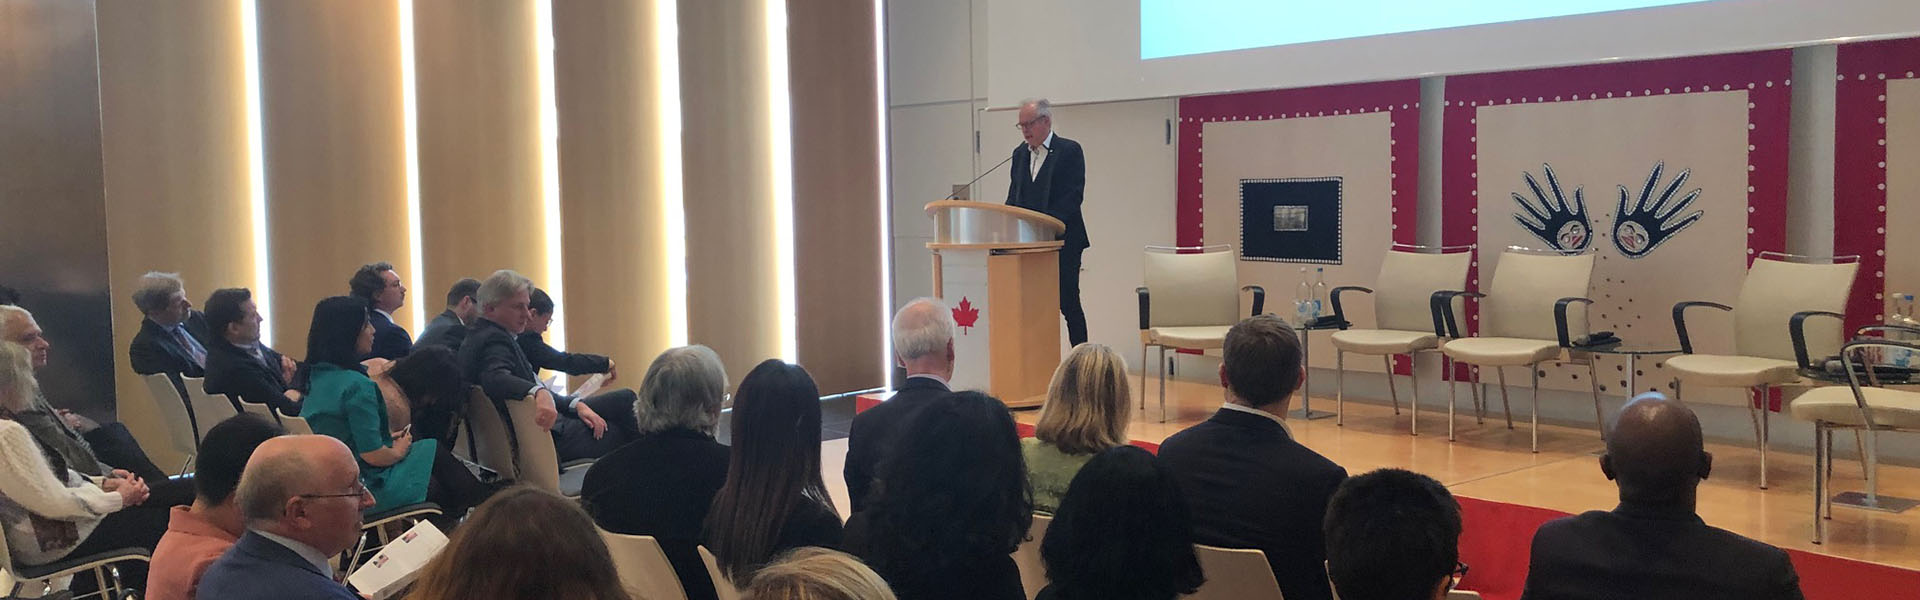 Simon Brault delivers a speech in Germany about the Canada Council's role in supporting Canada's cultural diplomacy.